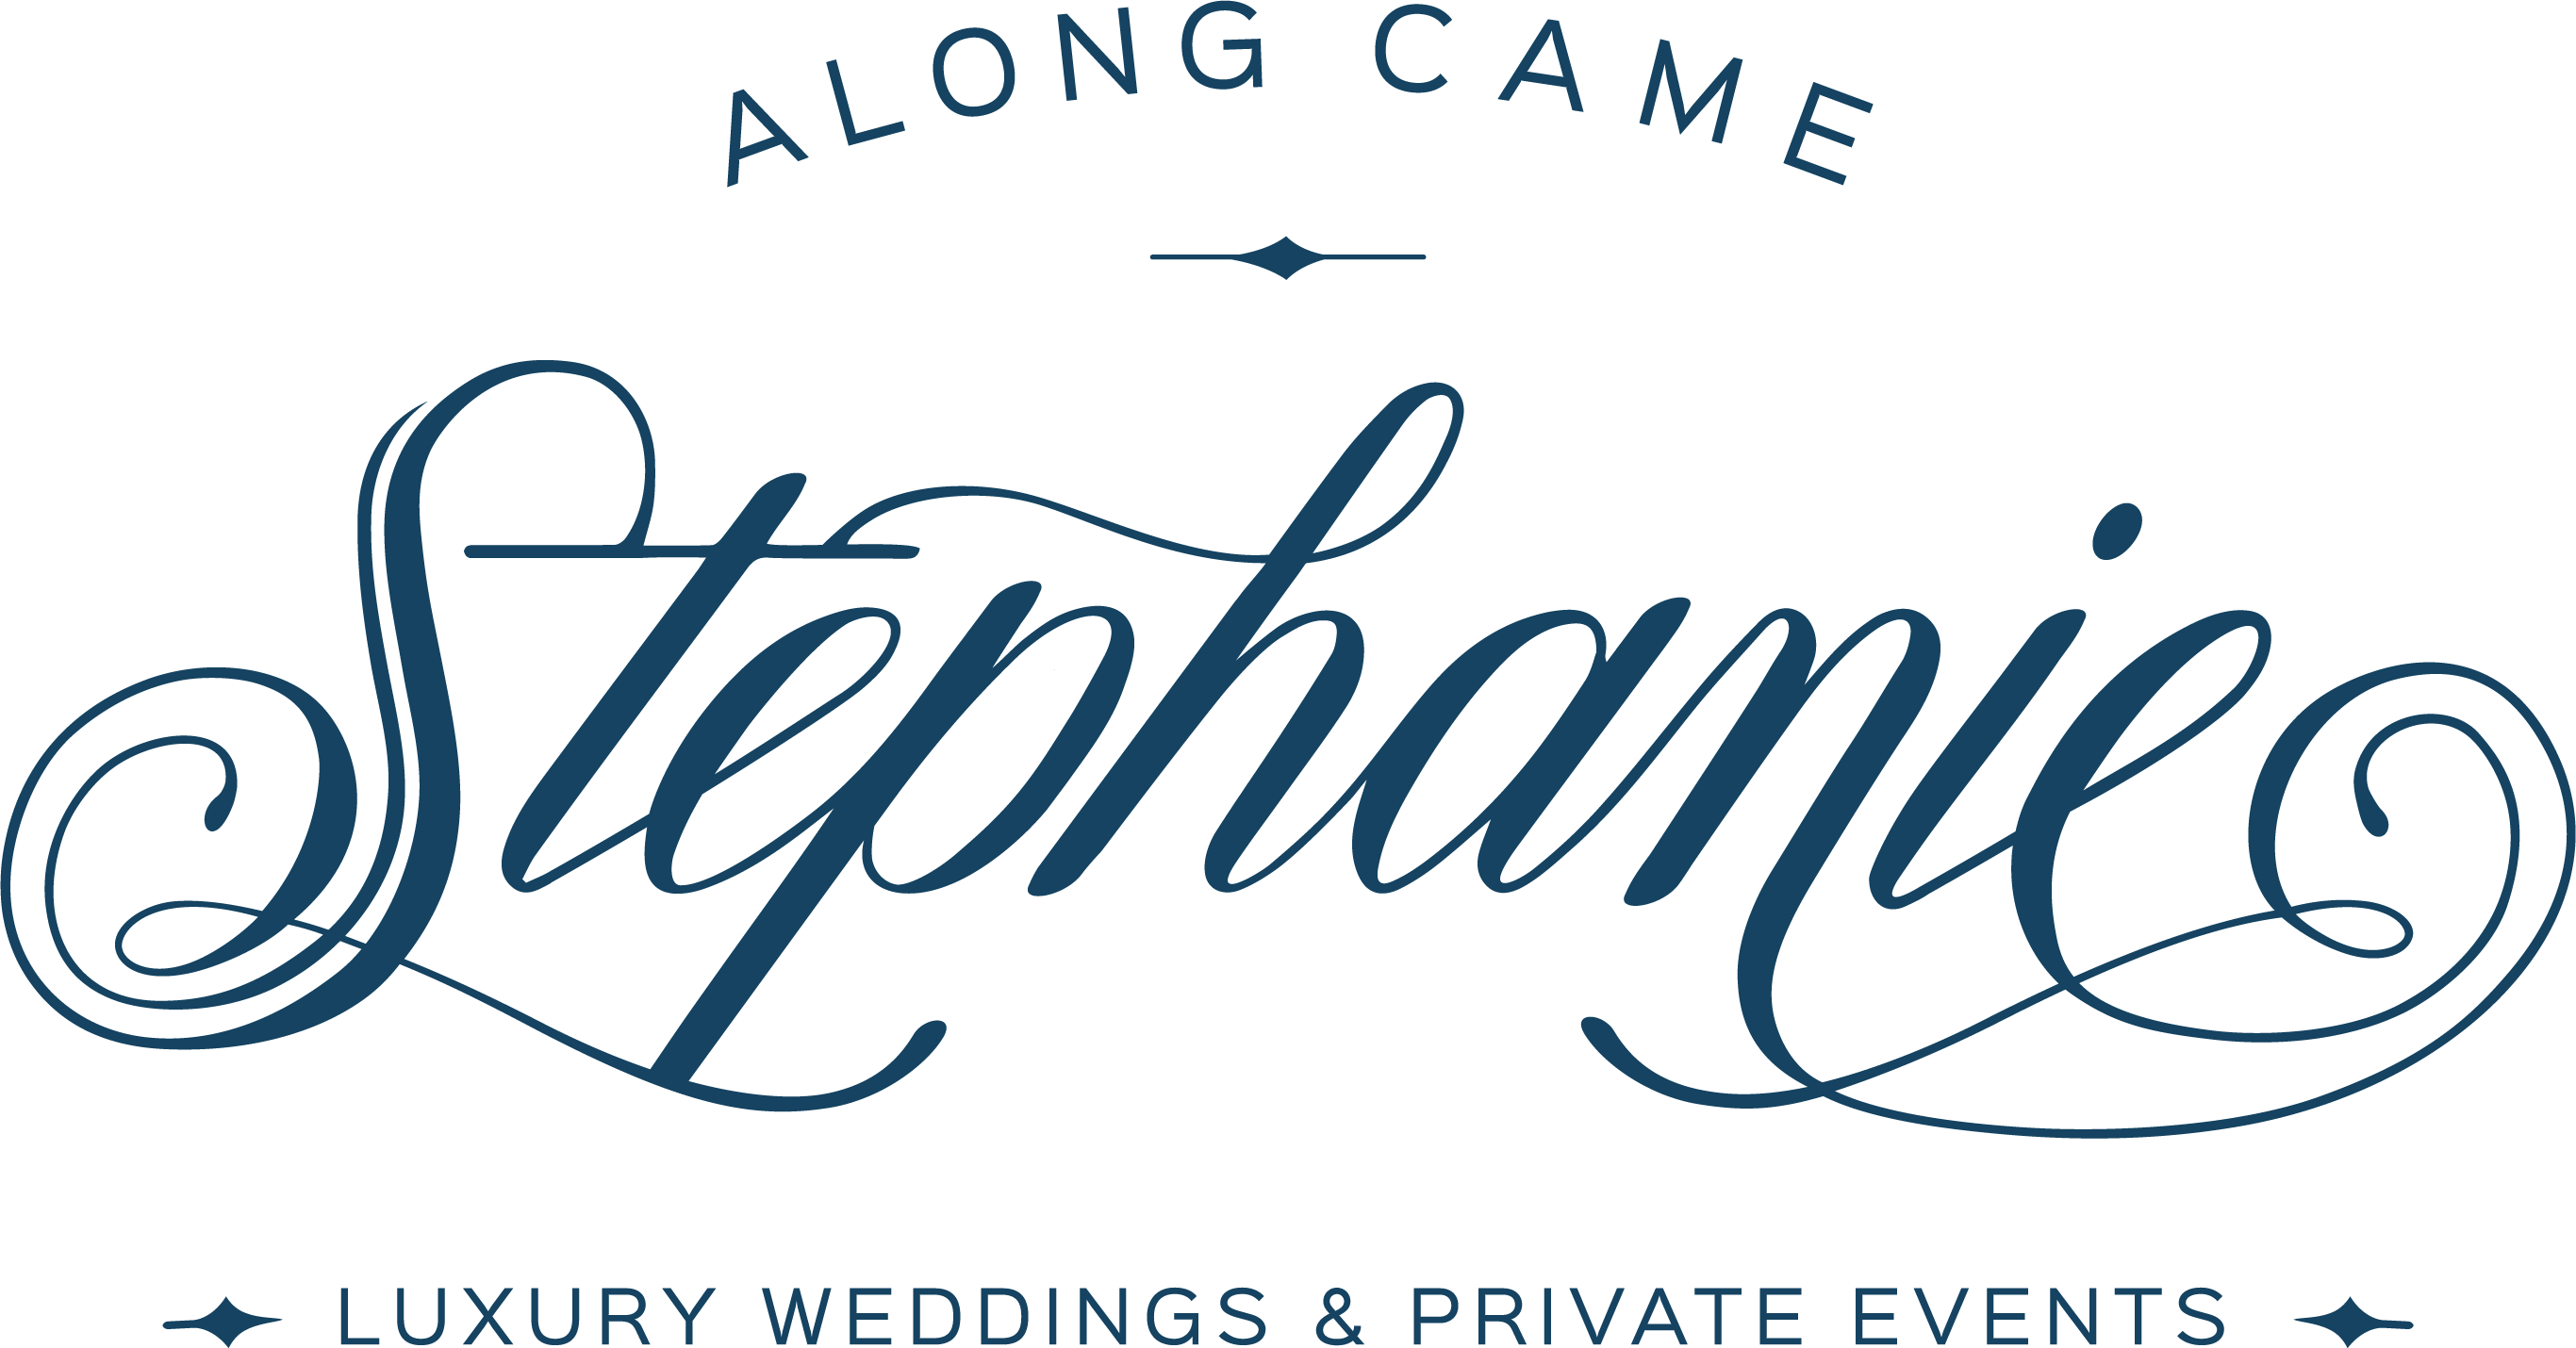 Along Came Stephanie